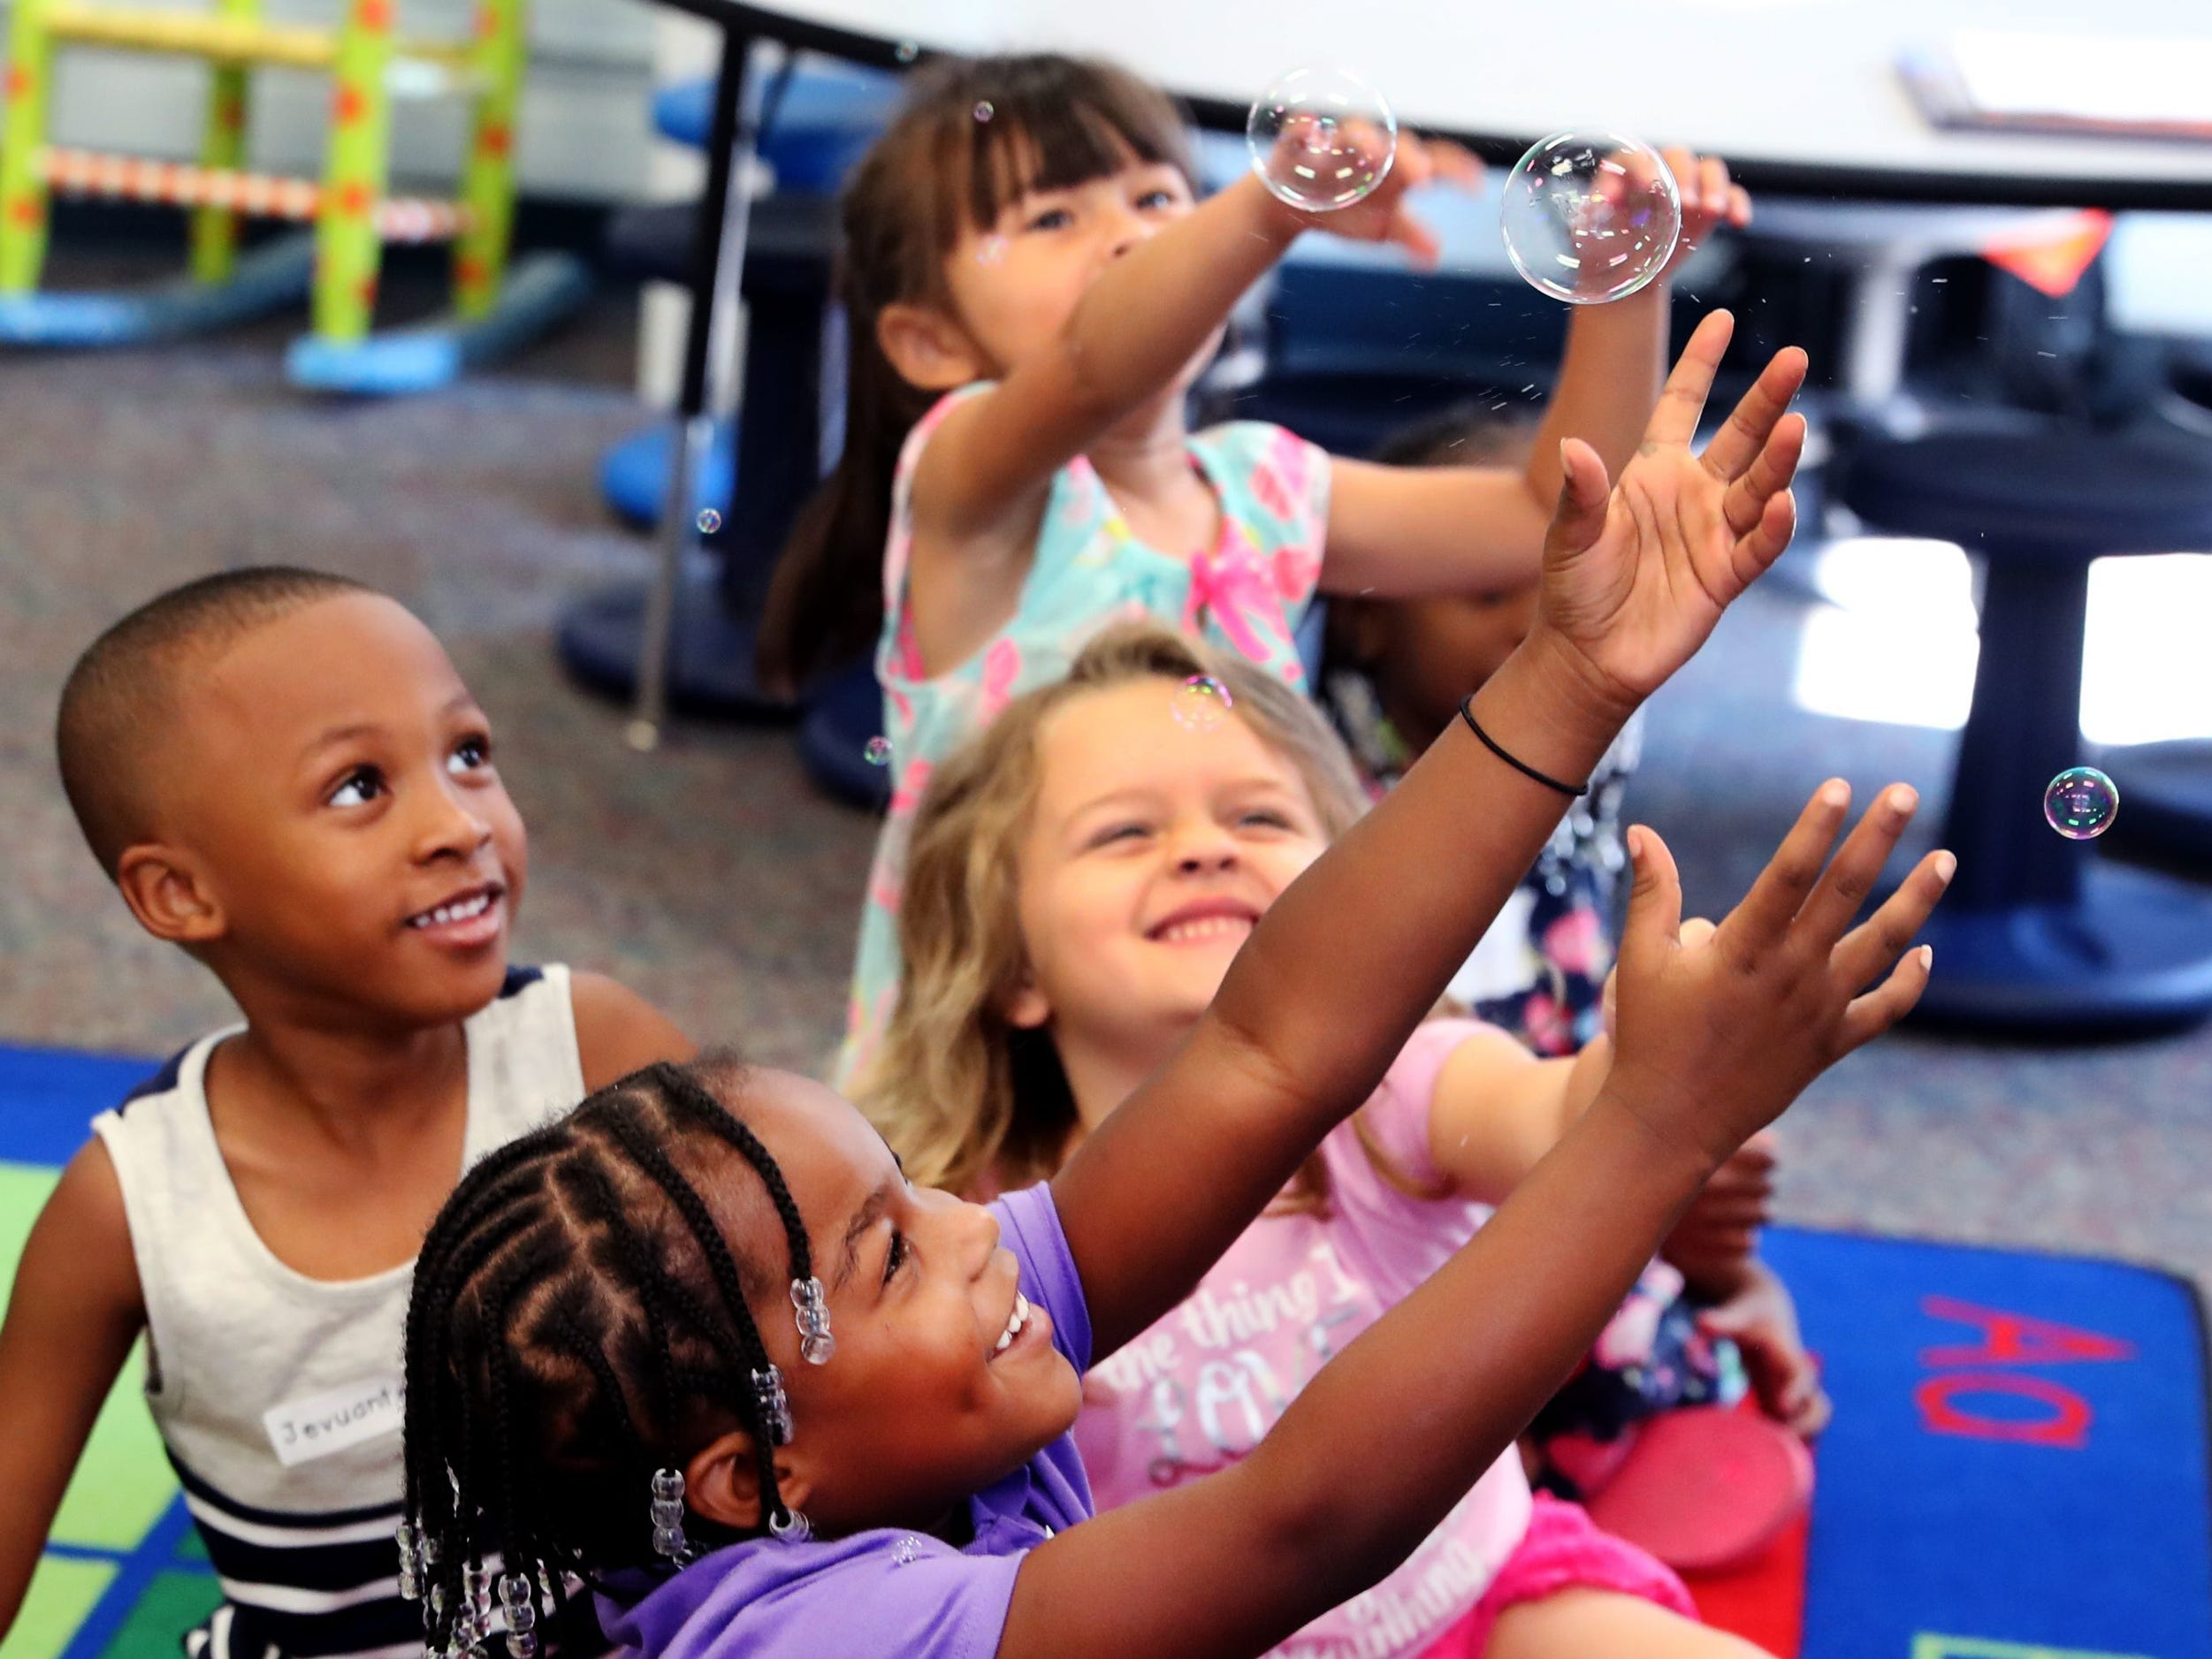 Reeves Rogers kindergarten student Lakelynn Miller reaches out to catch bubbles with other students when they are told it is ok to do so during a self discipline exercise at Kinder Camp, on Wednesday, July 18, 2018. The camp helps kindergarten students get acclimated to the classroom.